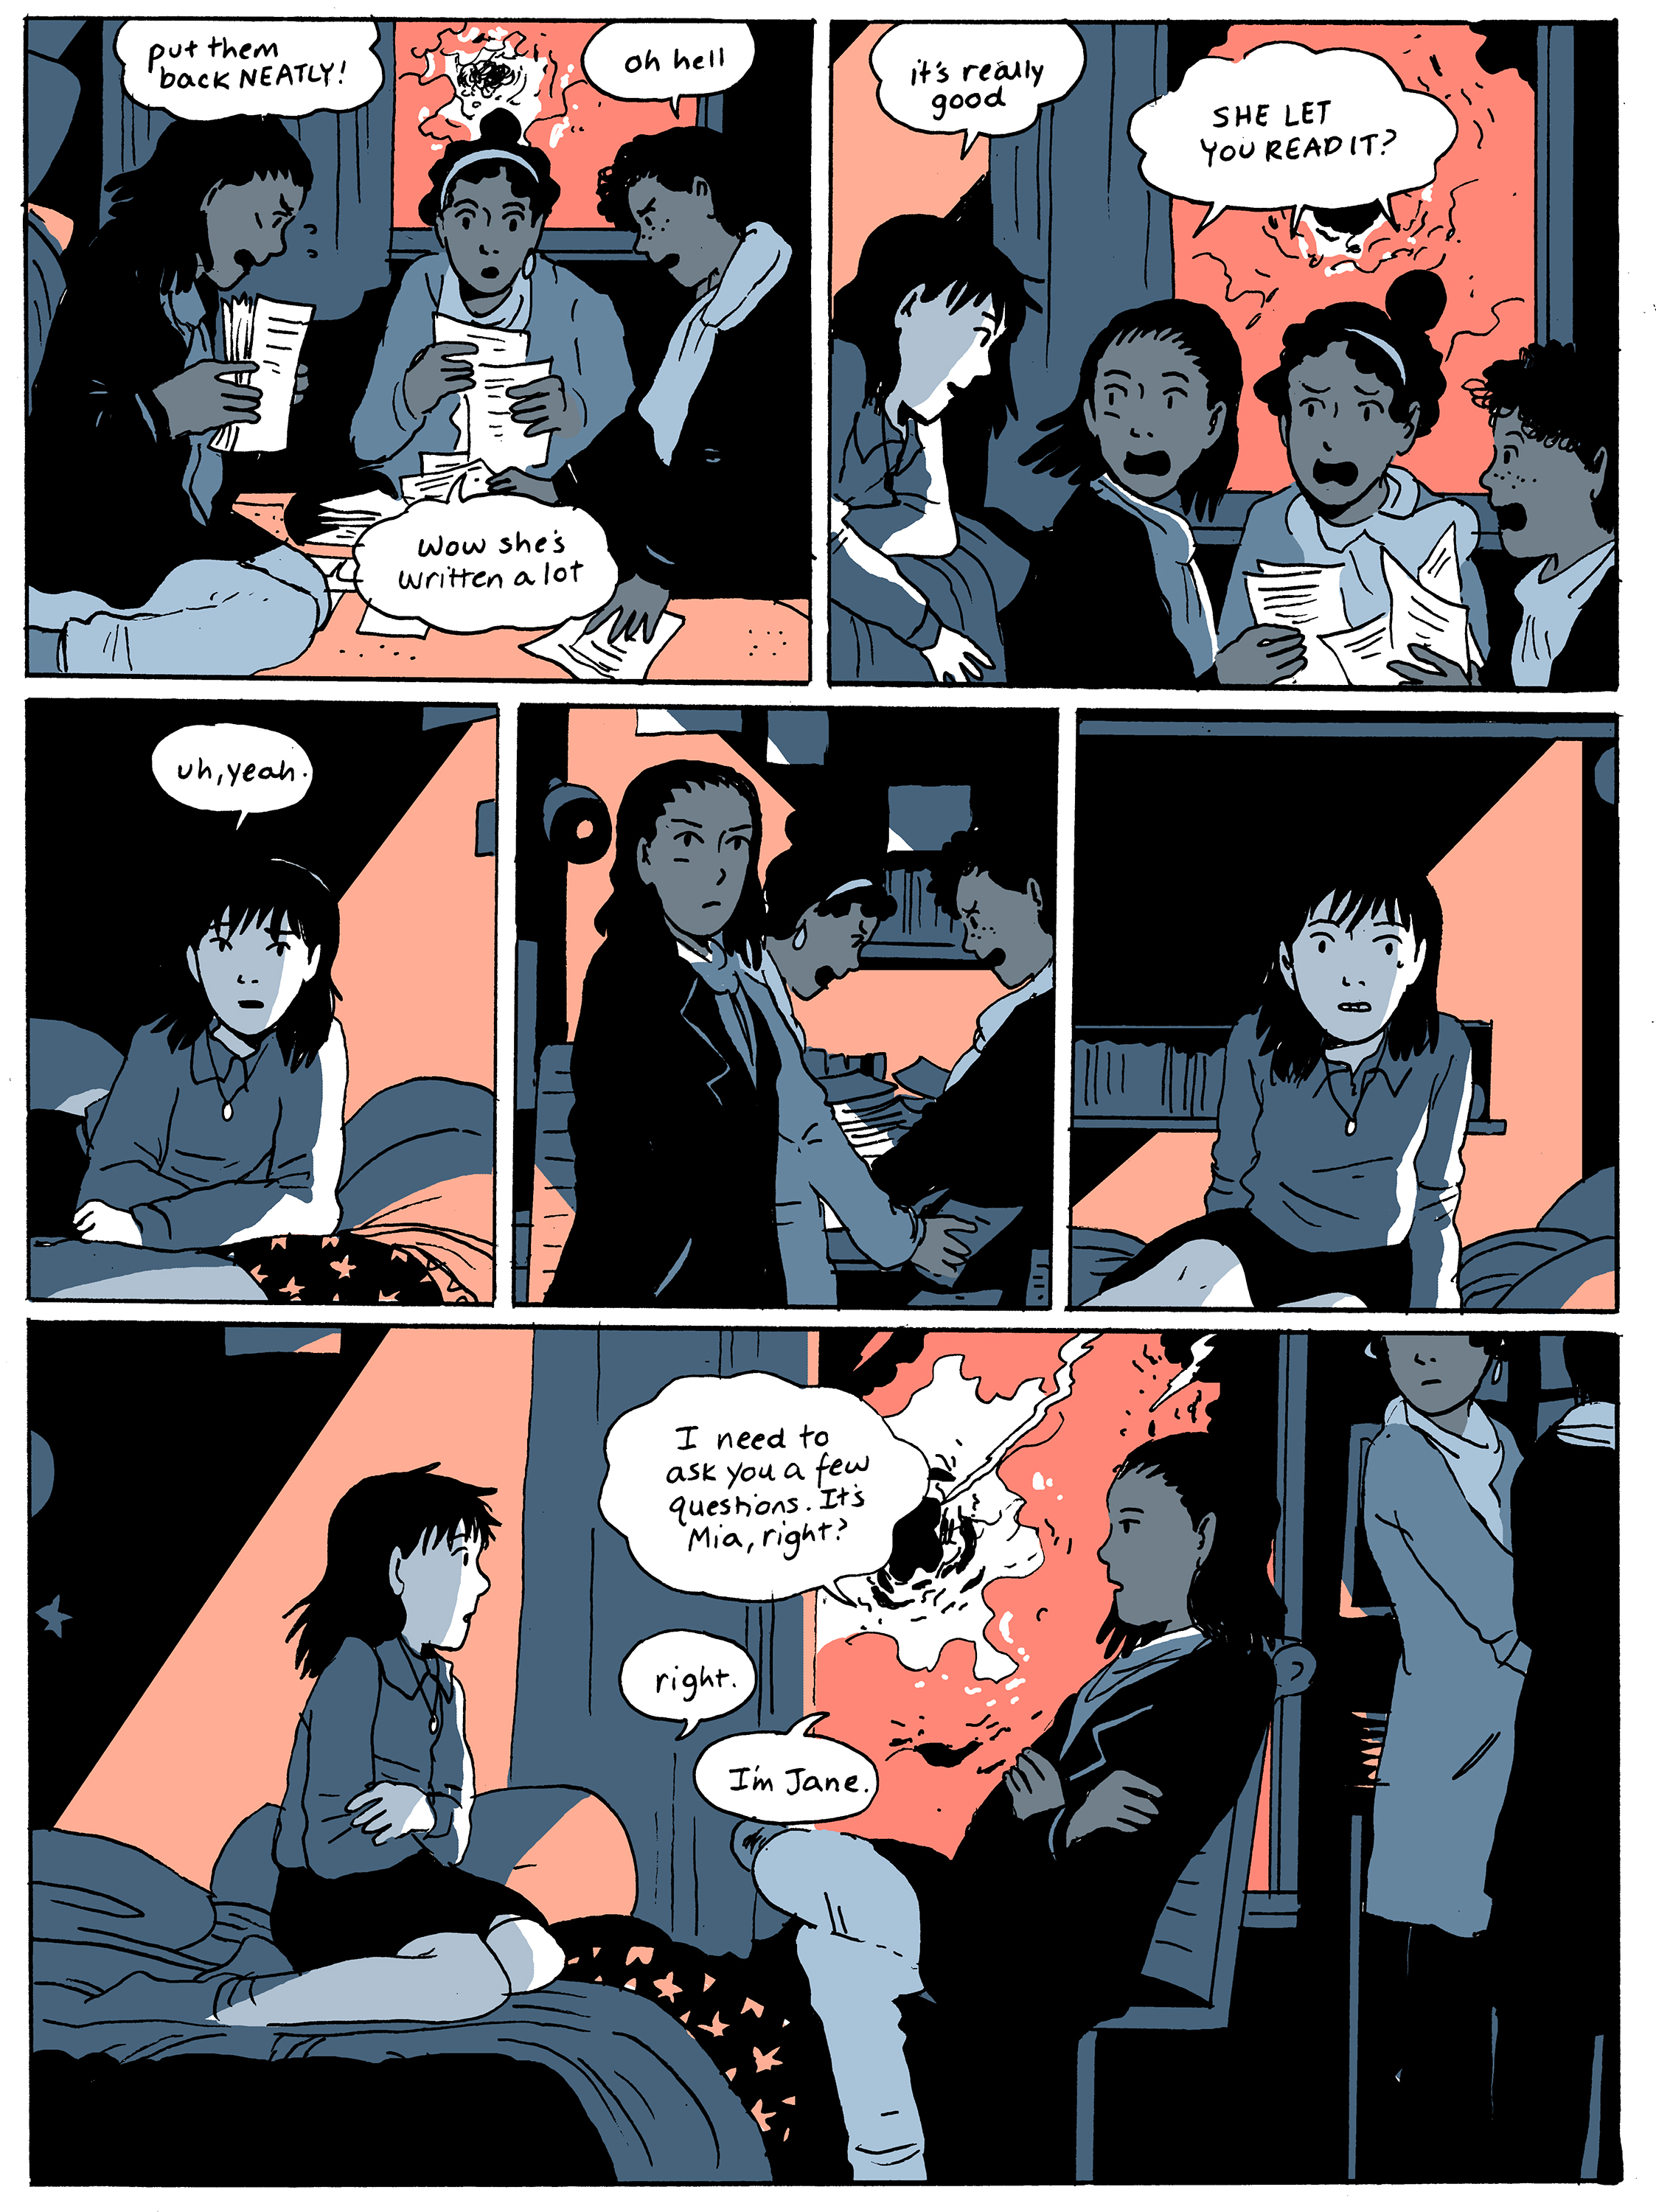 chapter12_page03.jpg